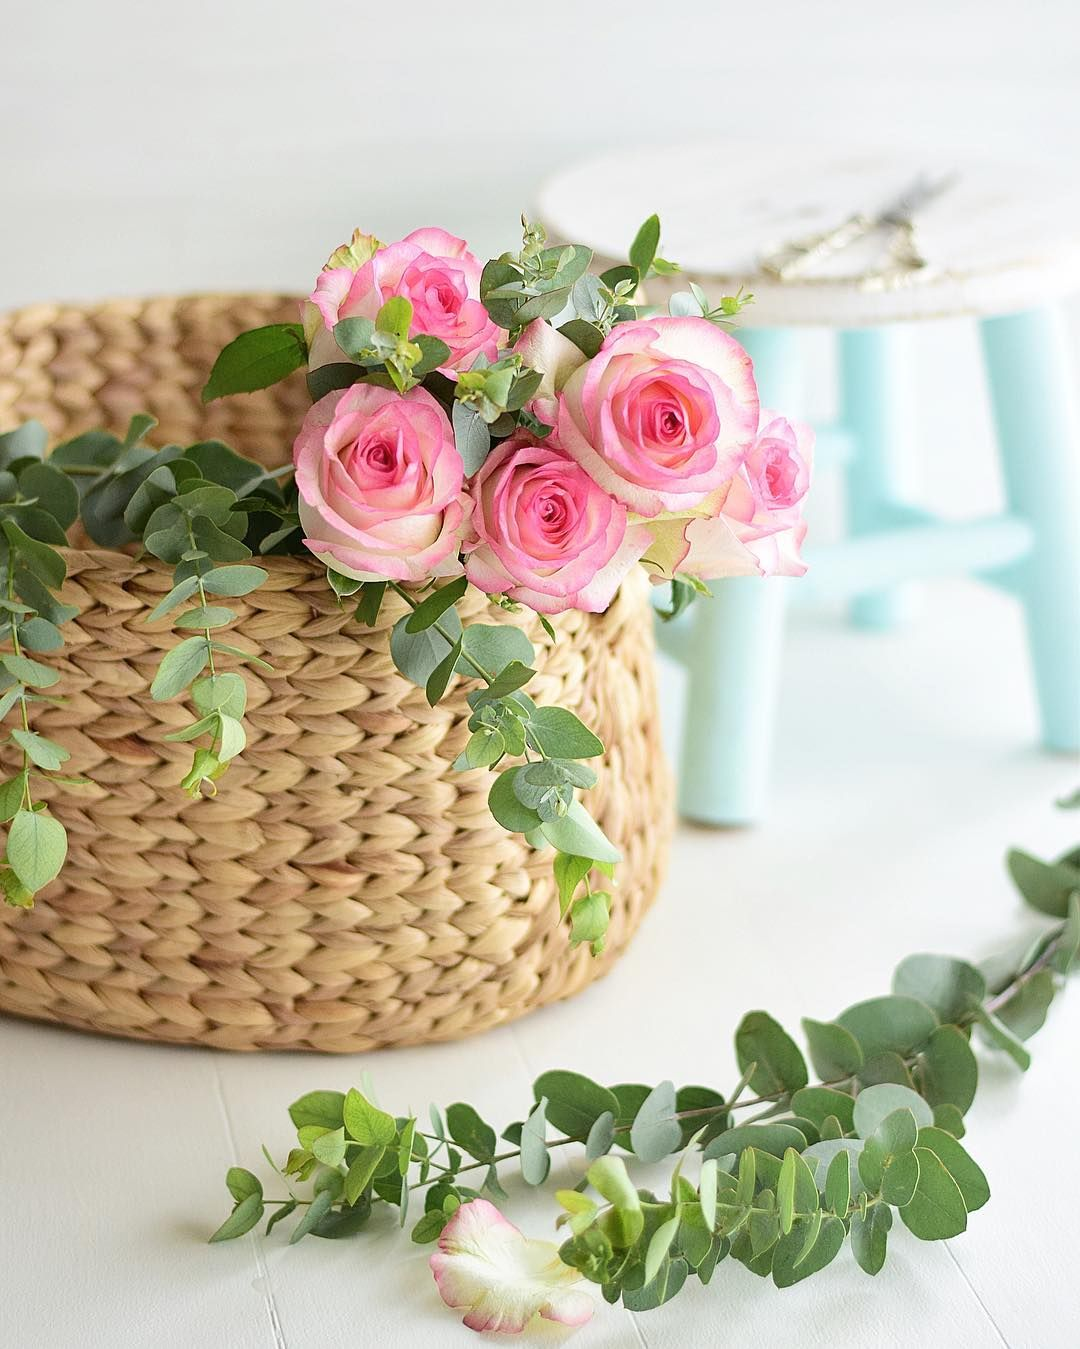 Roses To Start The Week But Without Thorns Good Morning Flowers Good Morning Cards Good Morning Greetings